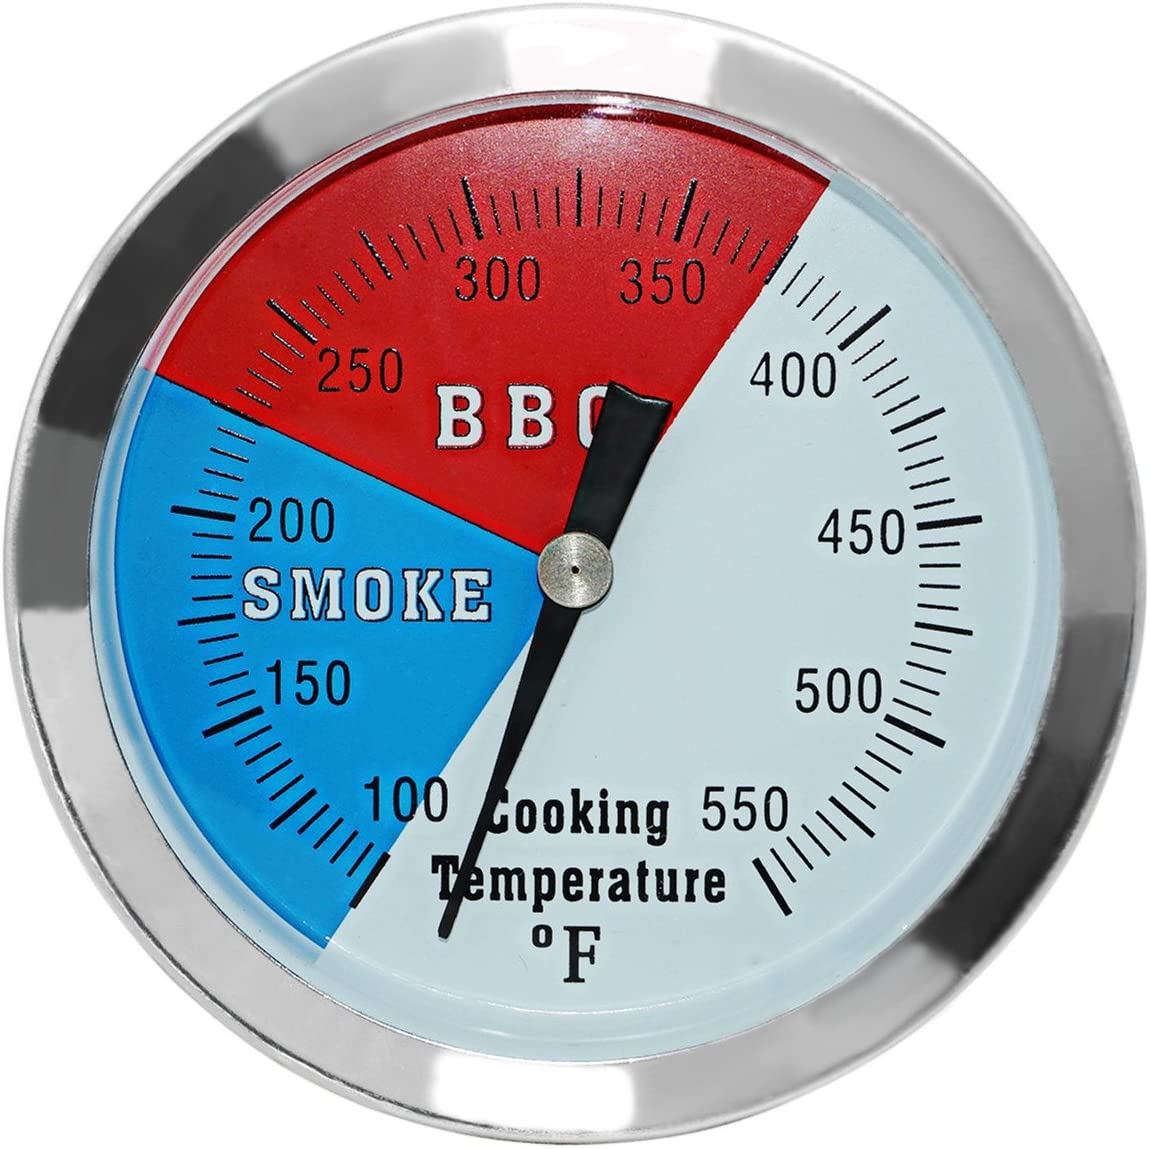 If you love meat, you'll agree that there is nothing as awful as dry overcooked meat. To avoid such disappointments, you should purchase the best meat thermometer for smoking.